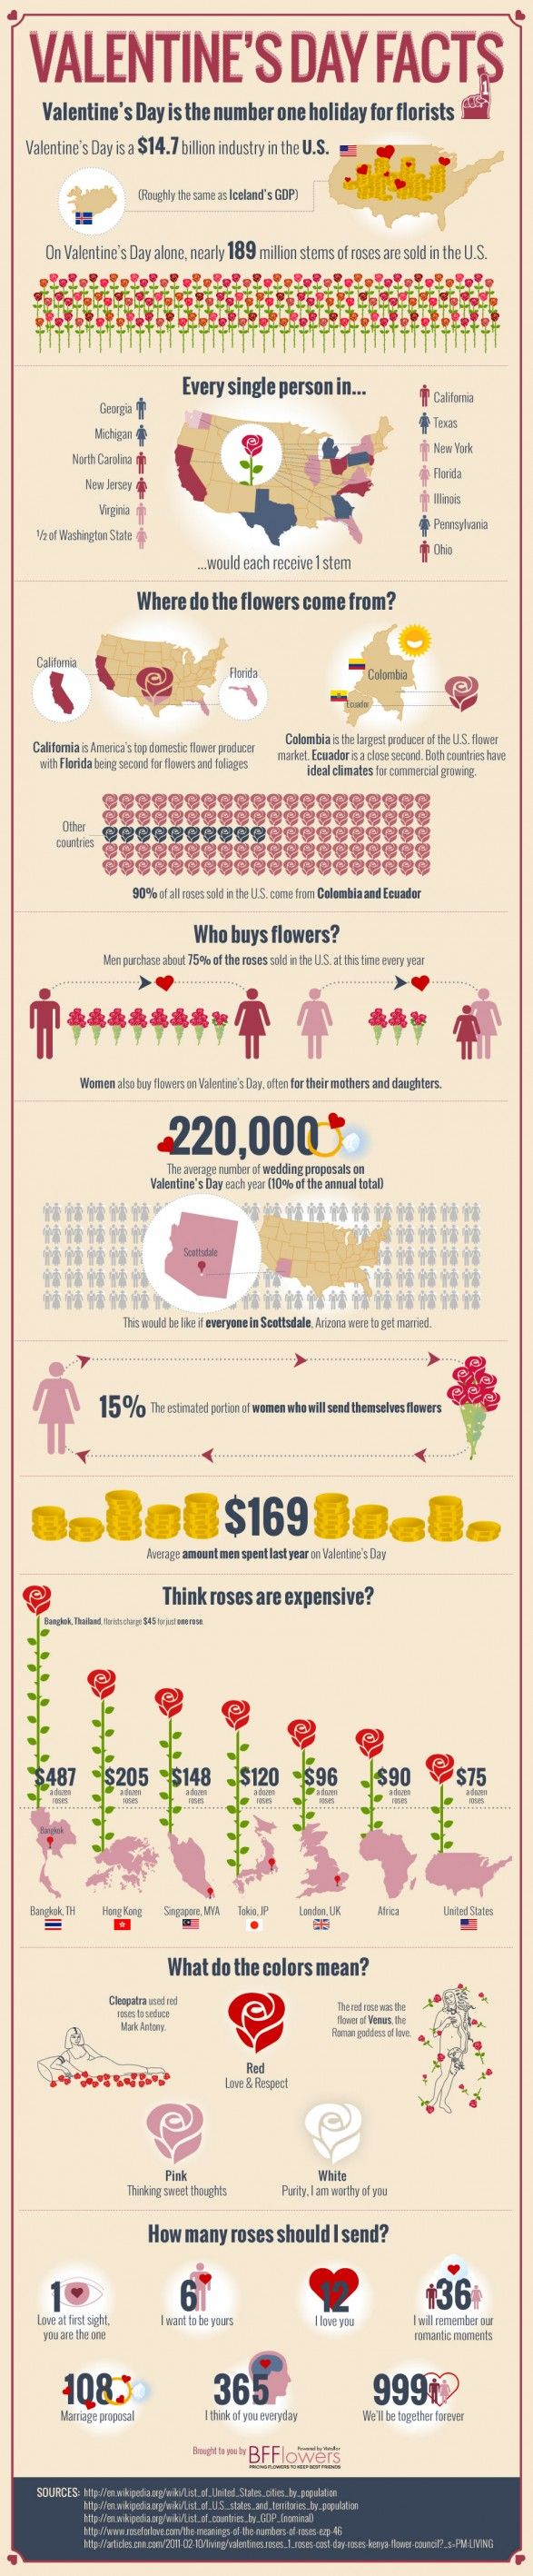 Valentine fun facts - for you to print and share!